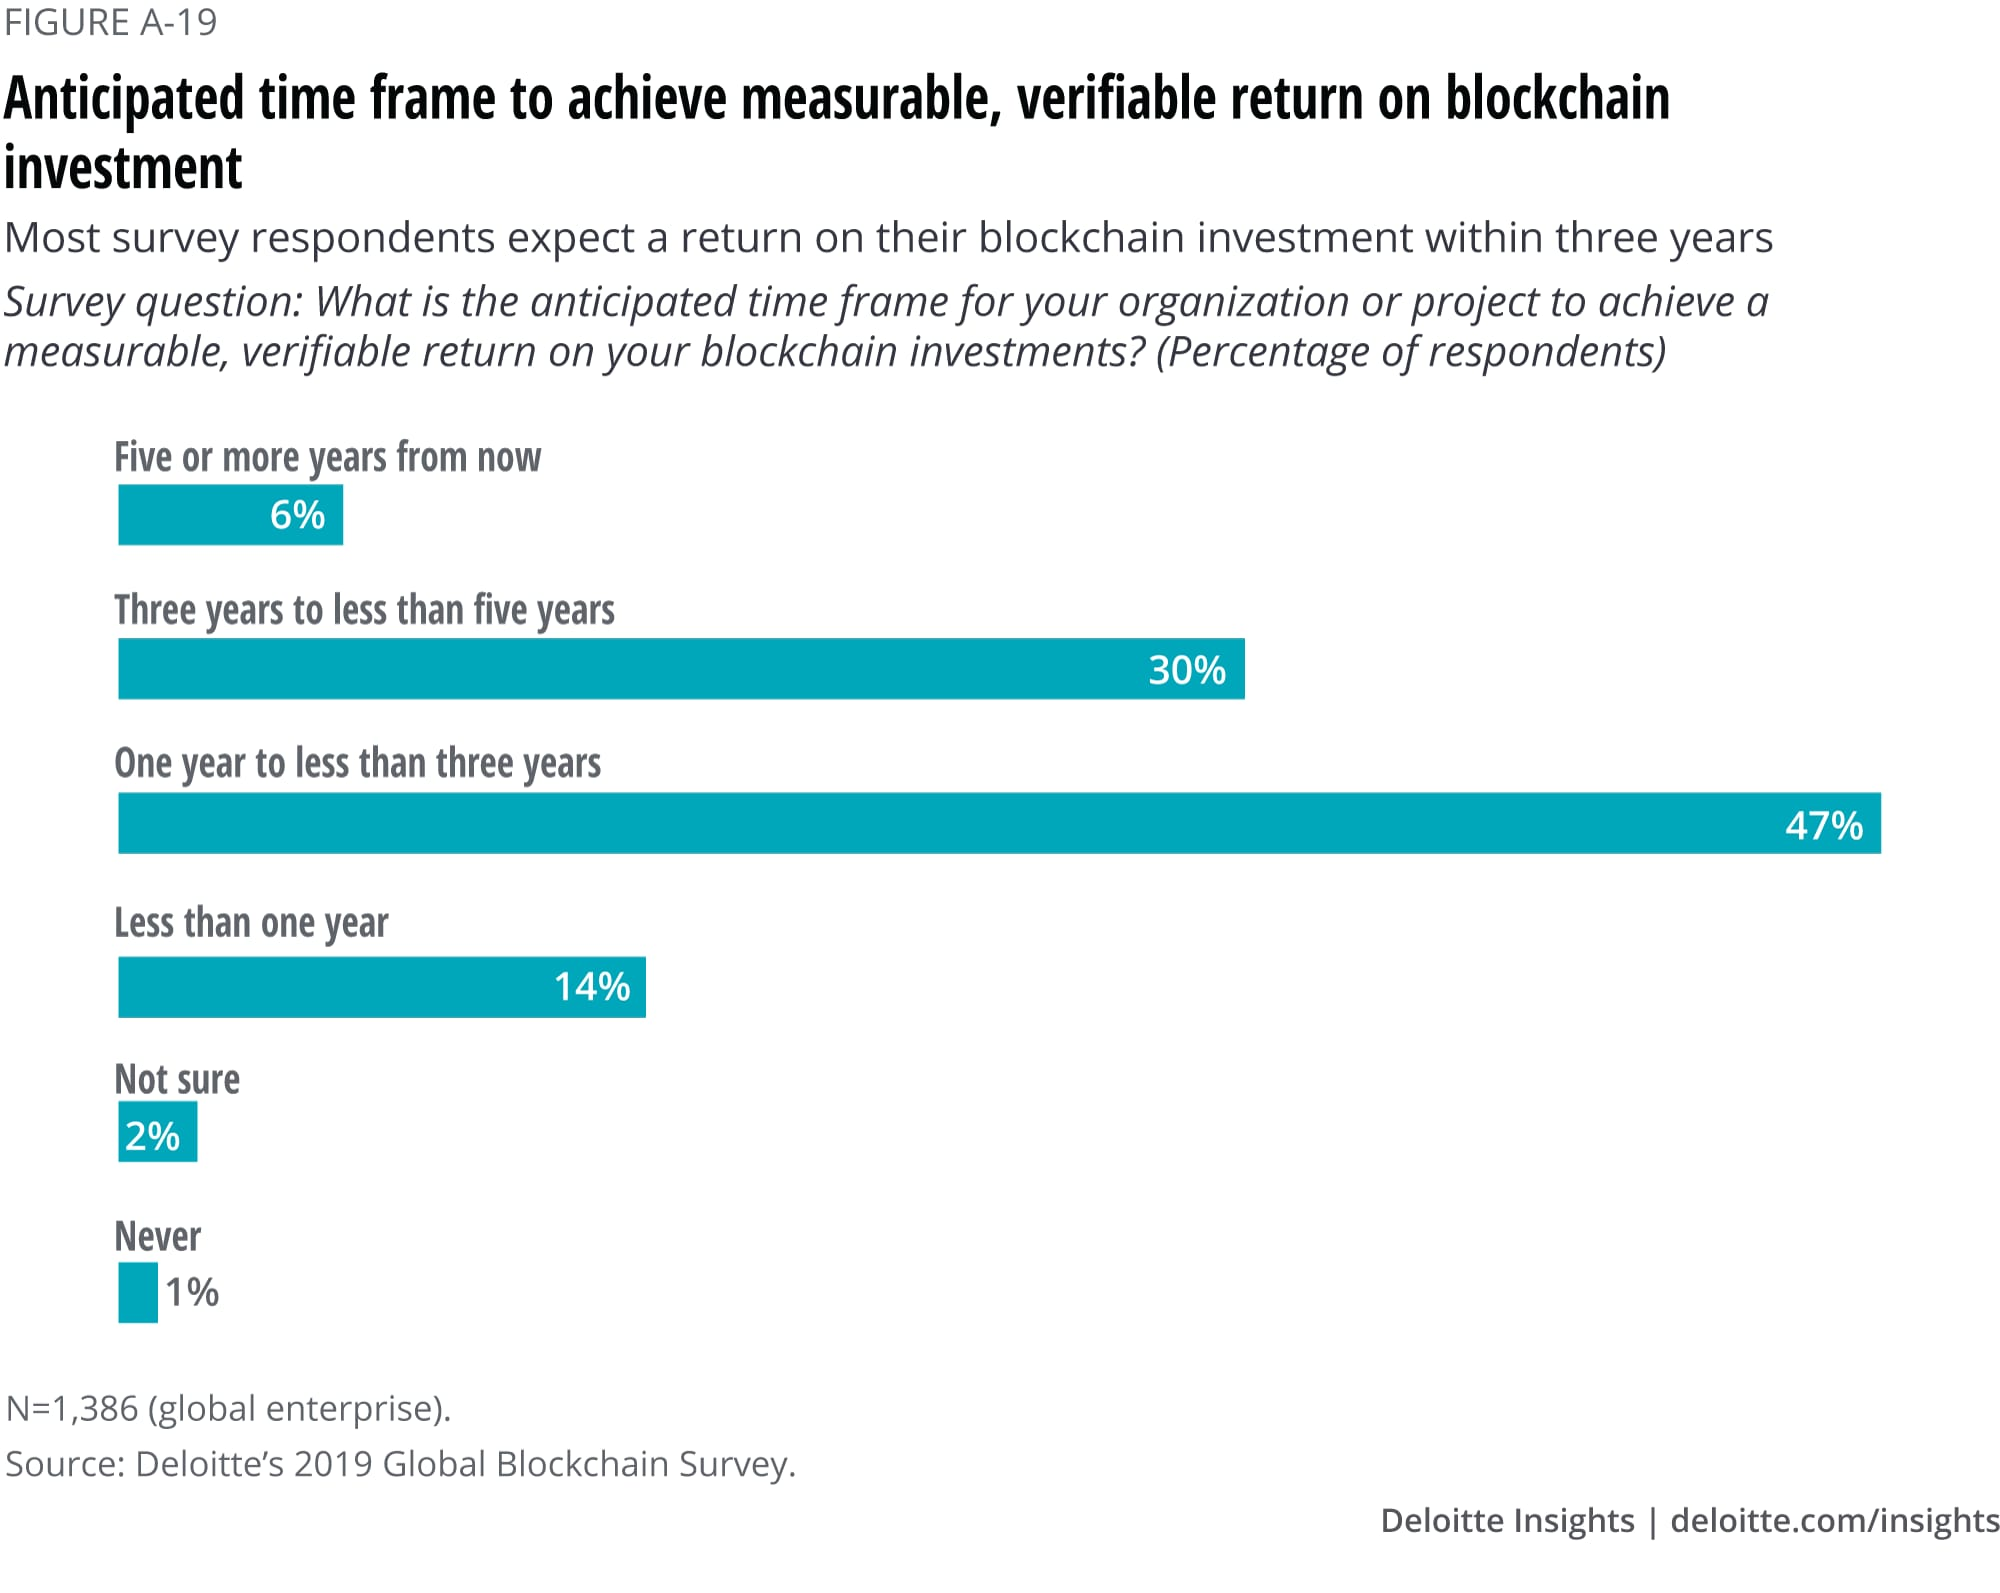 Anticipated time frame to achieve measurable, verifiable return on blockchain investment